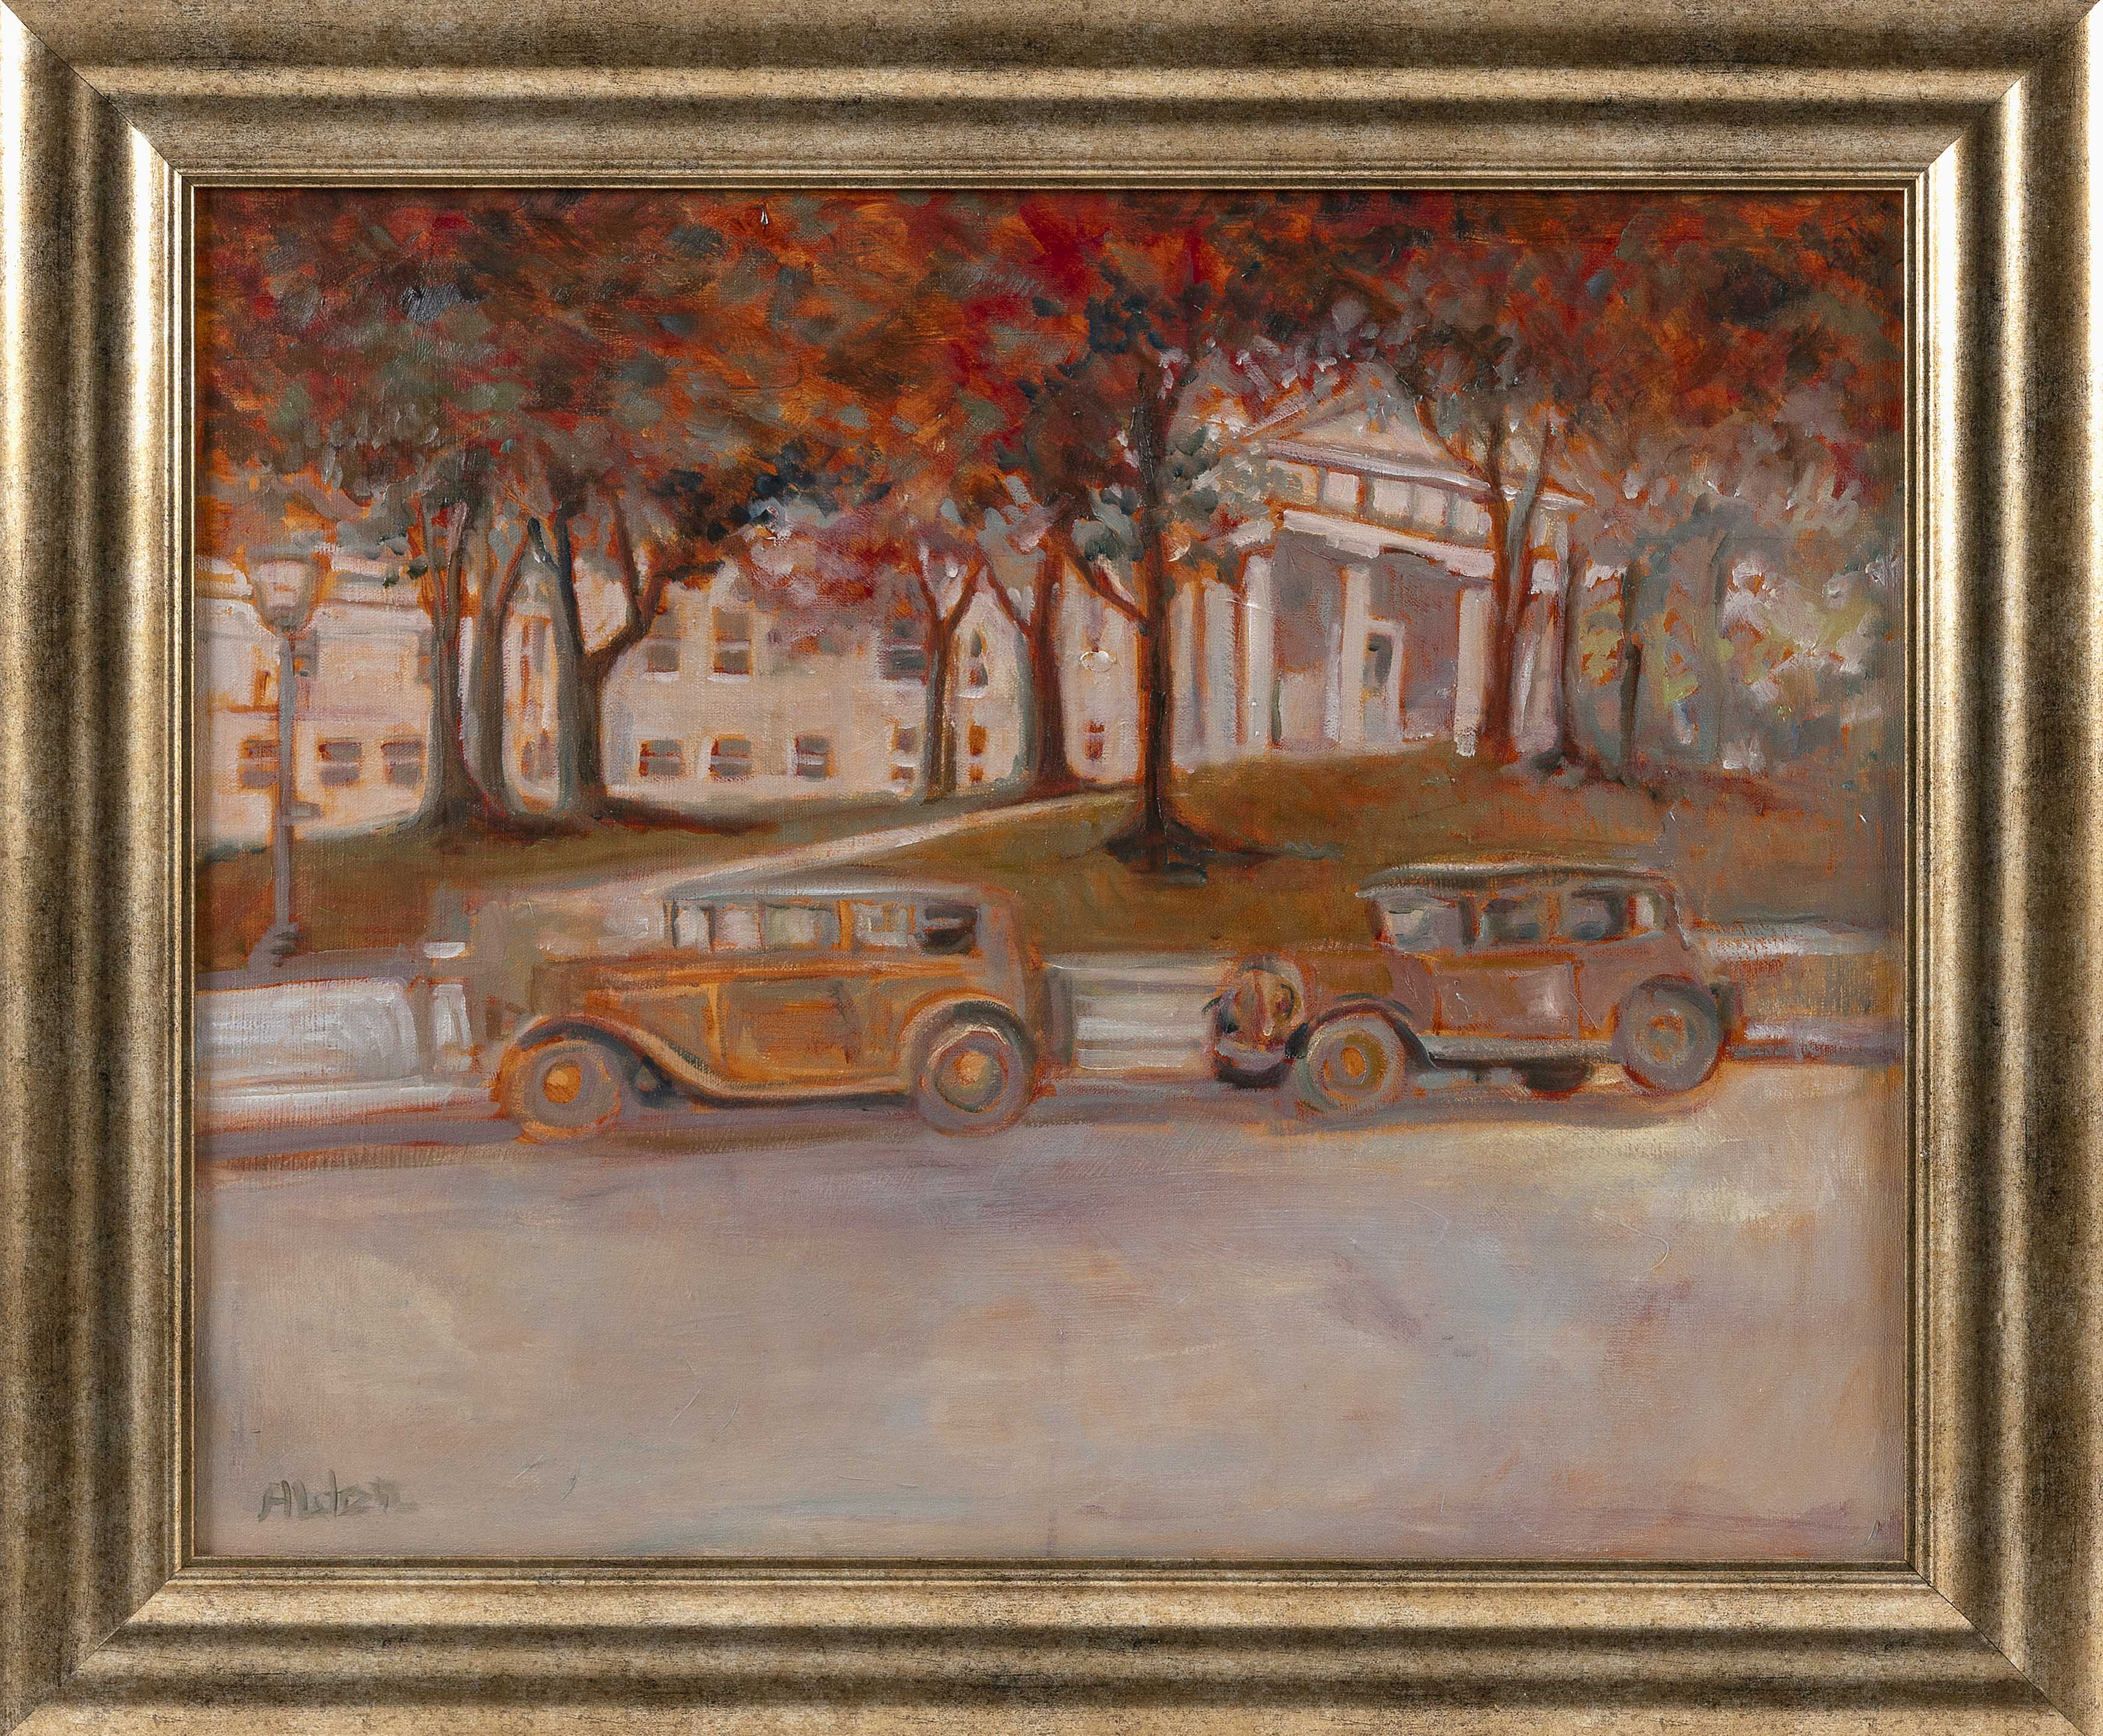 SELMA ALDEN (Massachusetts, Contemporary), Vintage automobiles outside the Barnstable County Courthouse., Oil on canvas, 20